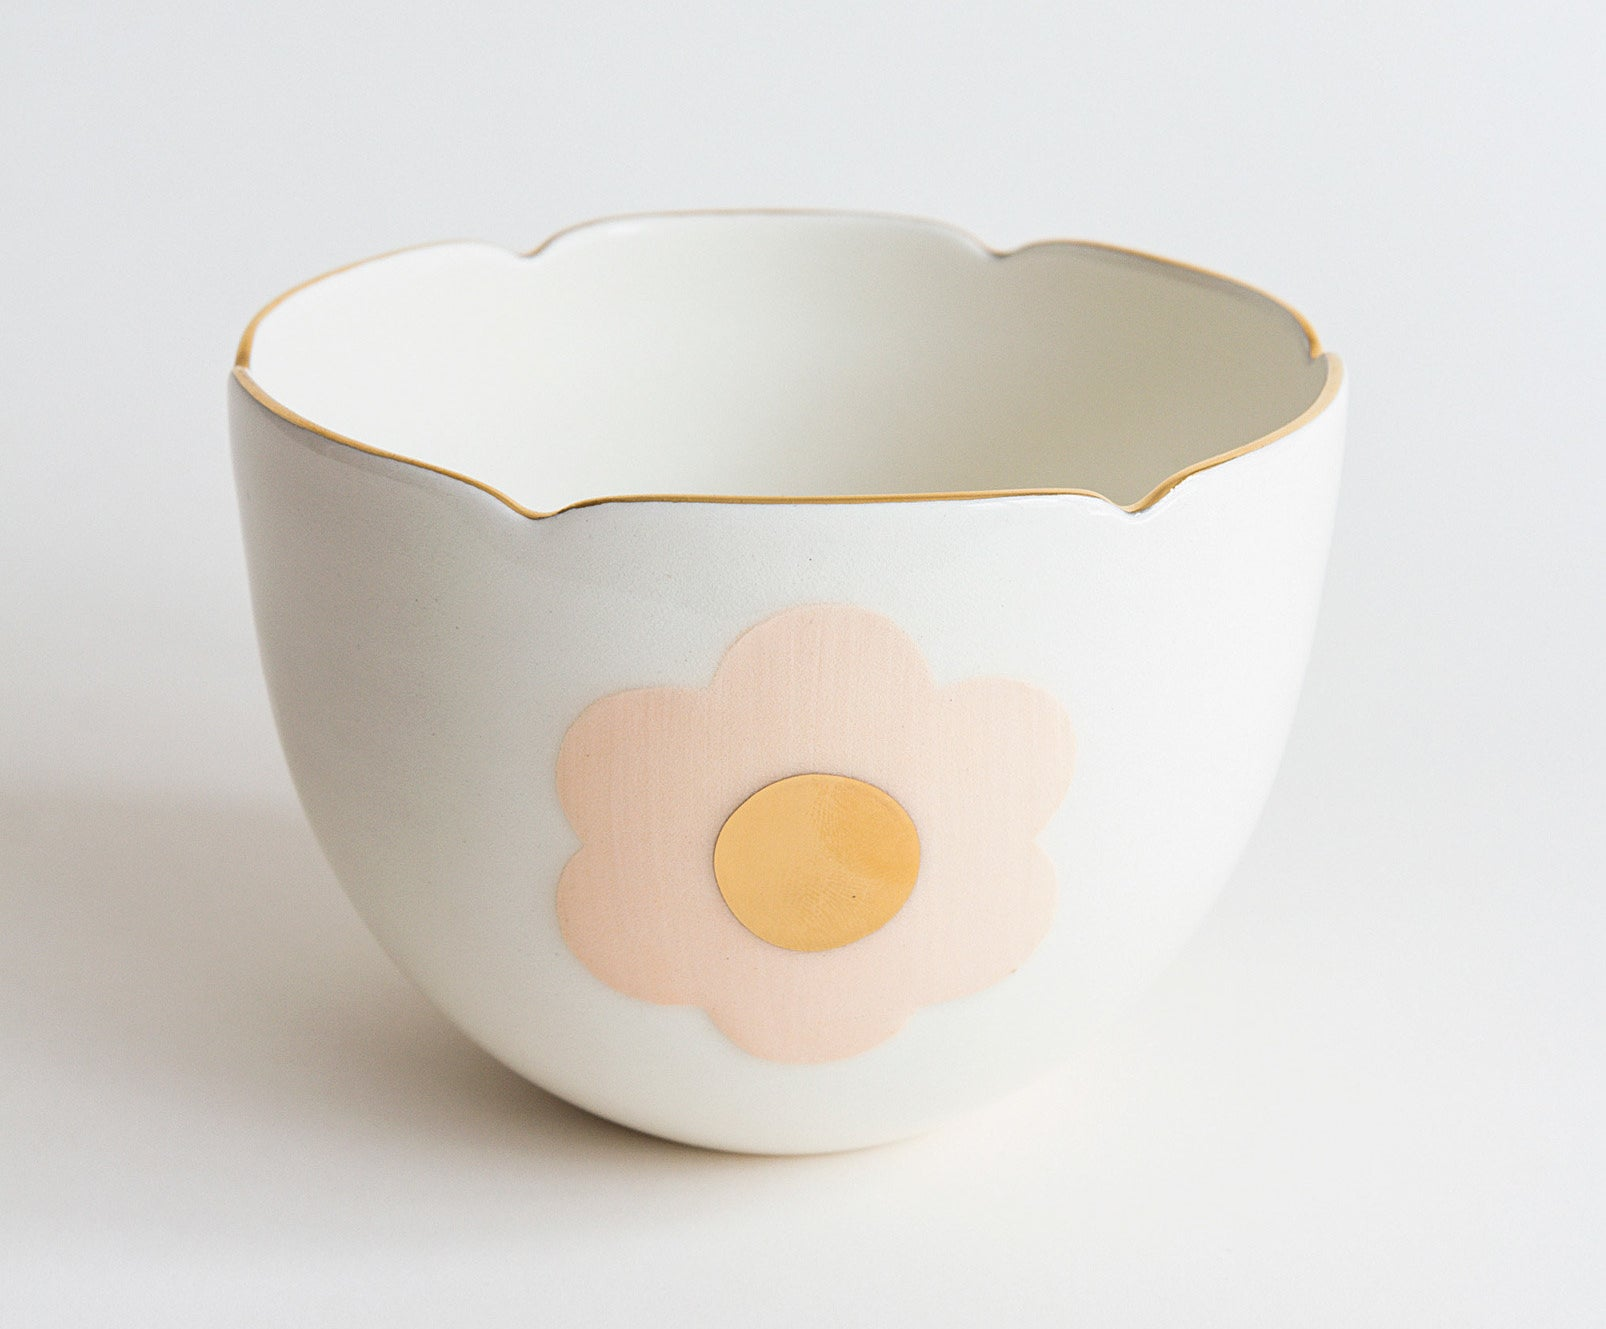 A dainty porcelain bowl with a gold rim and an abstract flower painted on it